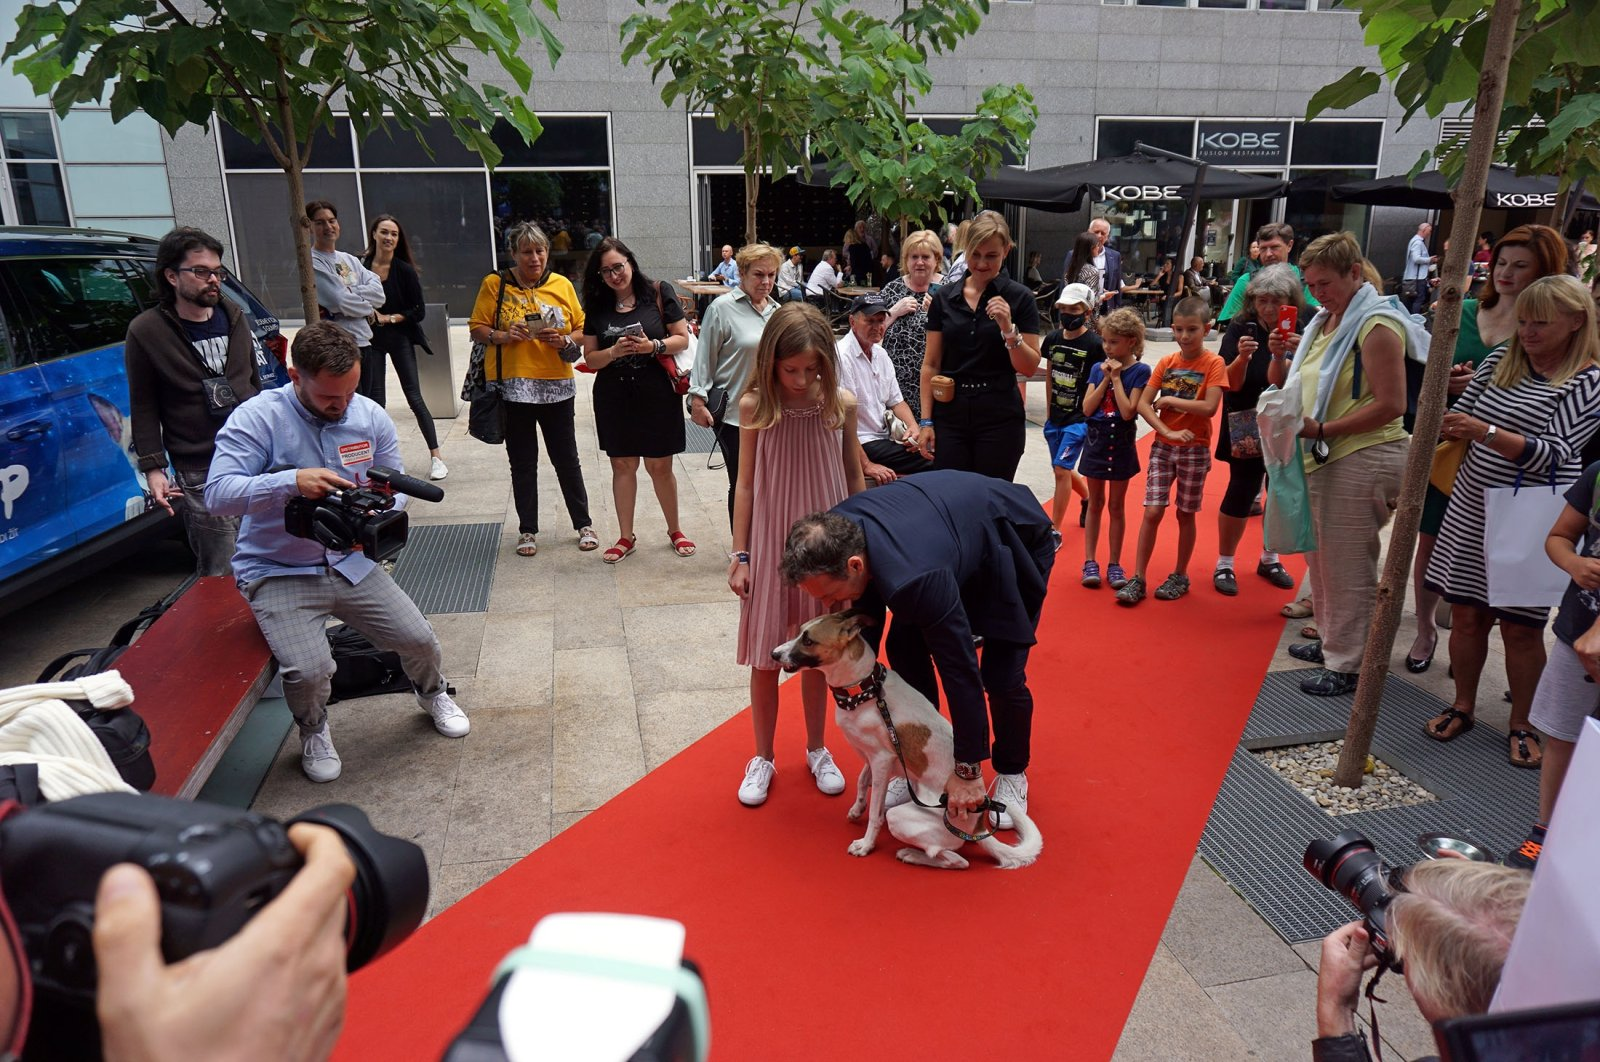 """Writer Filip Rozek poses with his daughter and Gump the dog on the red carpet before the """"Gump"""" premiere in Prague, Czech Republic, July 21, 2021. (Reuters Photo)"""